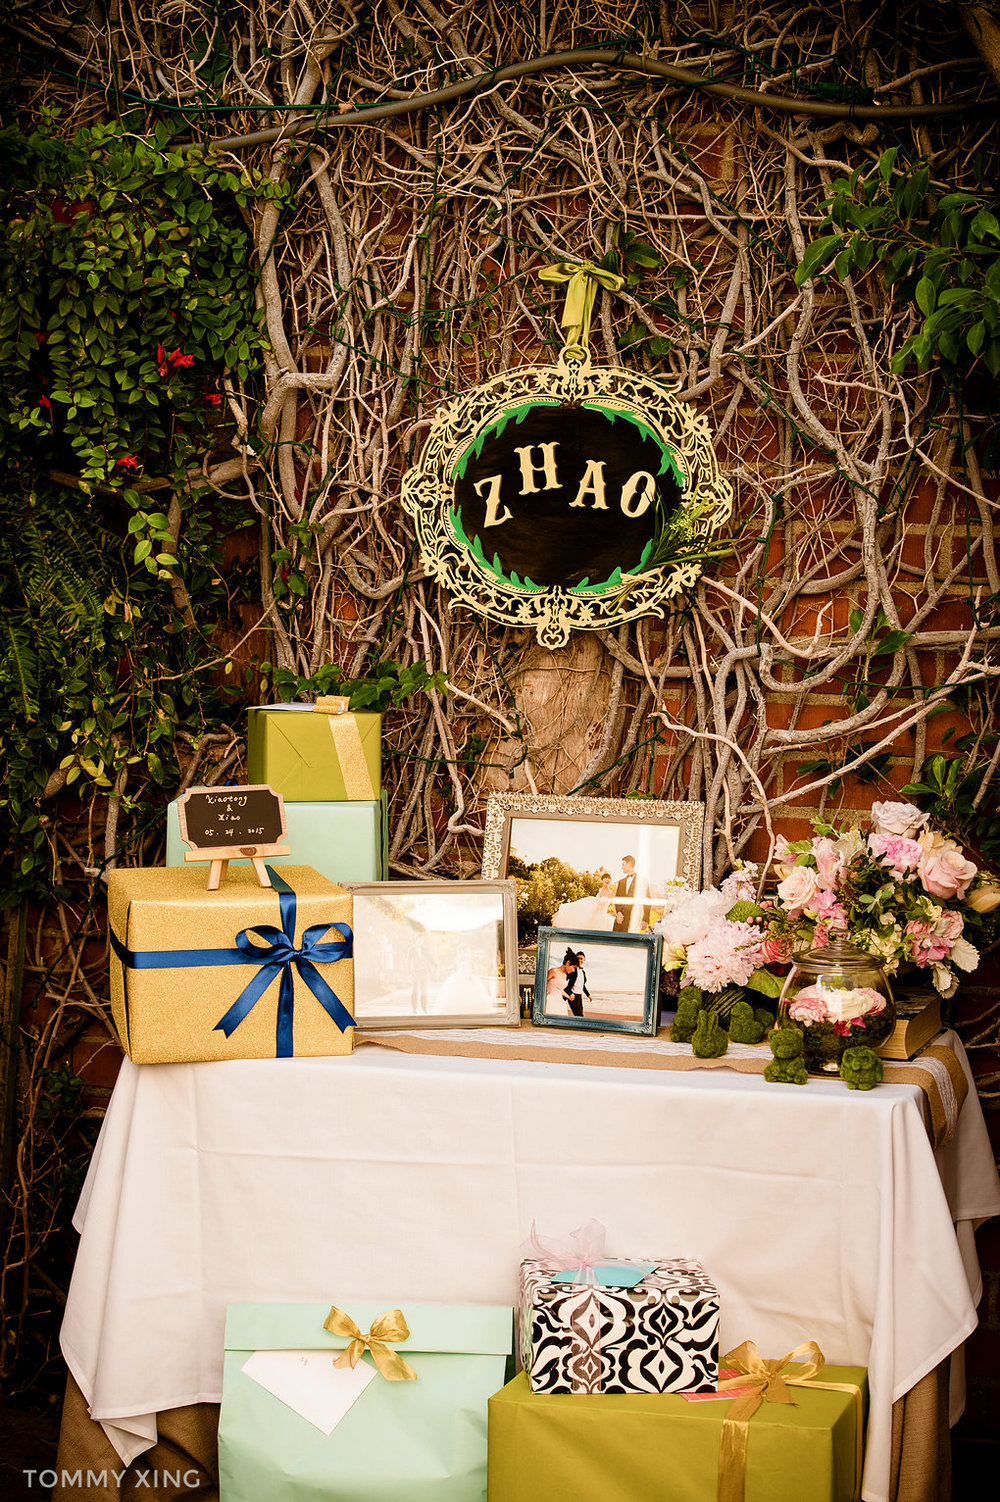 IL CIELO WEDDING Beverly Hills by Tommy Xing Photography 061.jpg